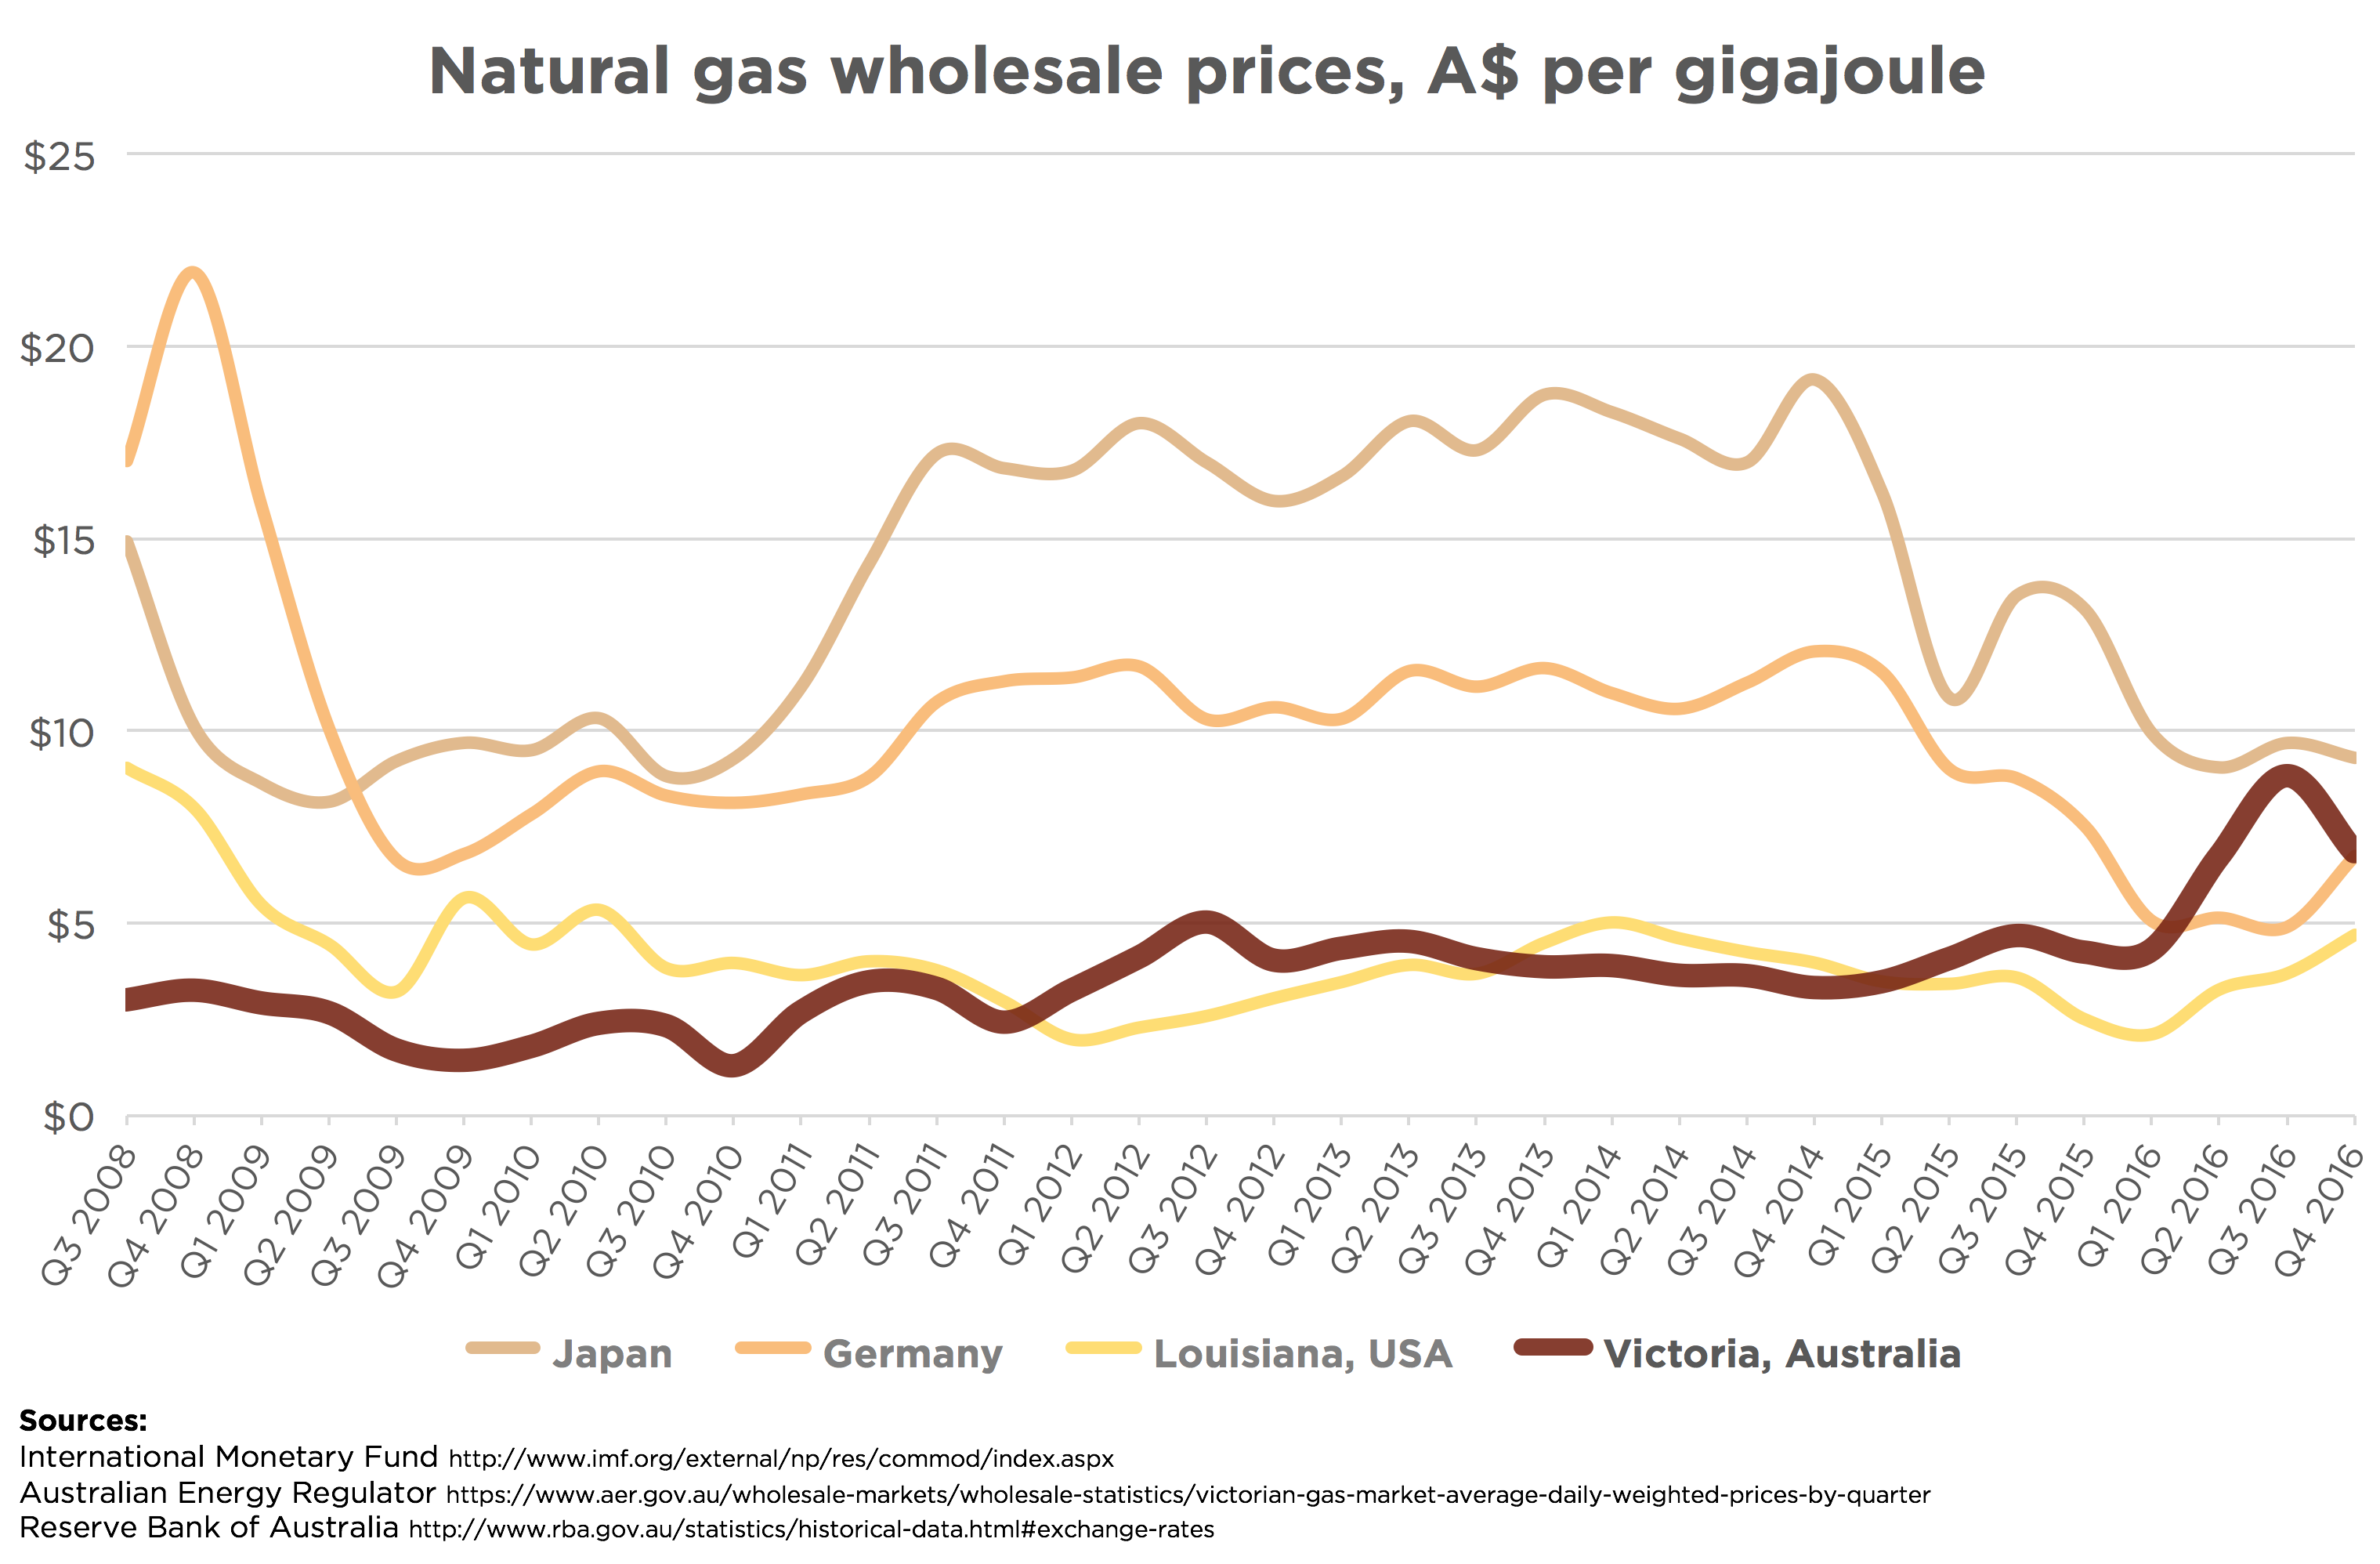 Natural gas wholesale prices, A$ per gigajoule